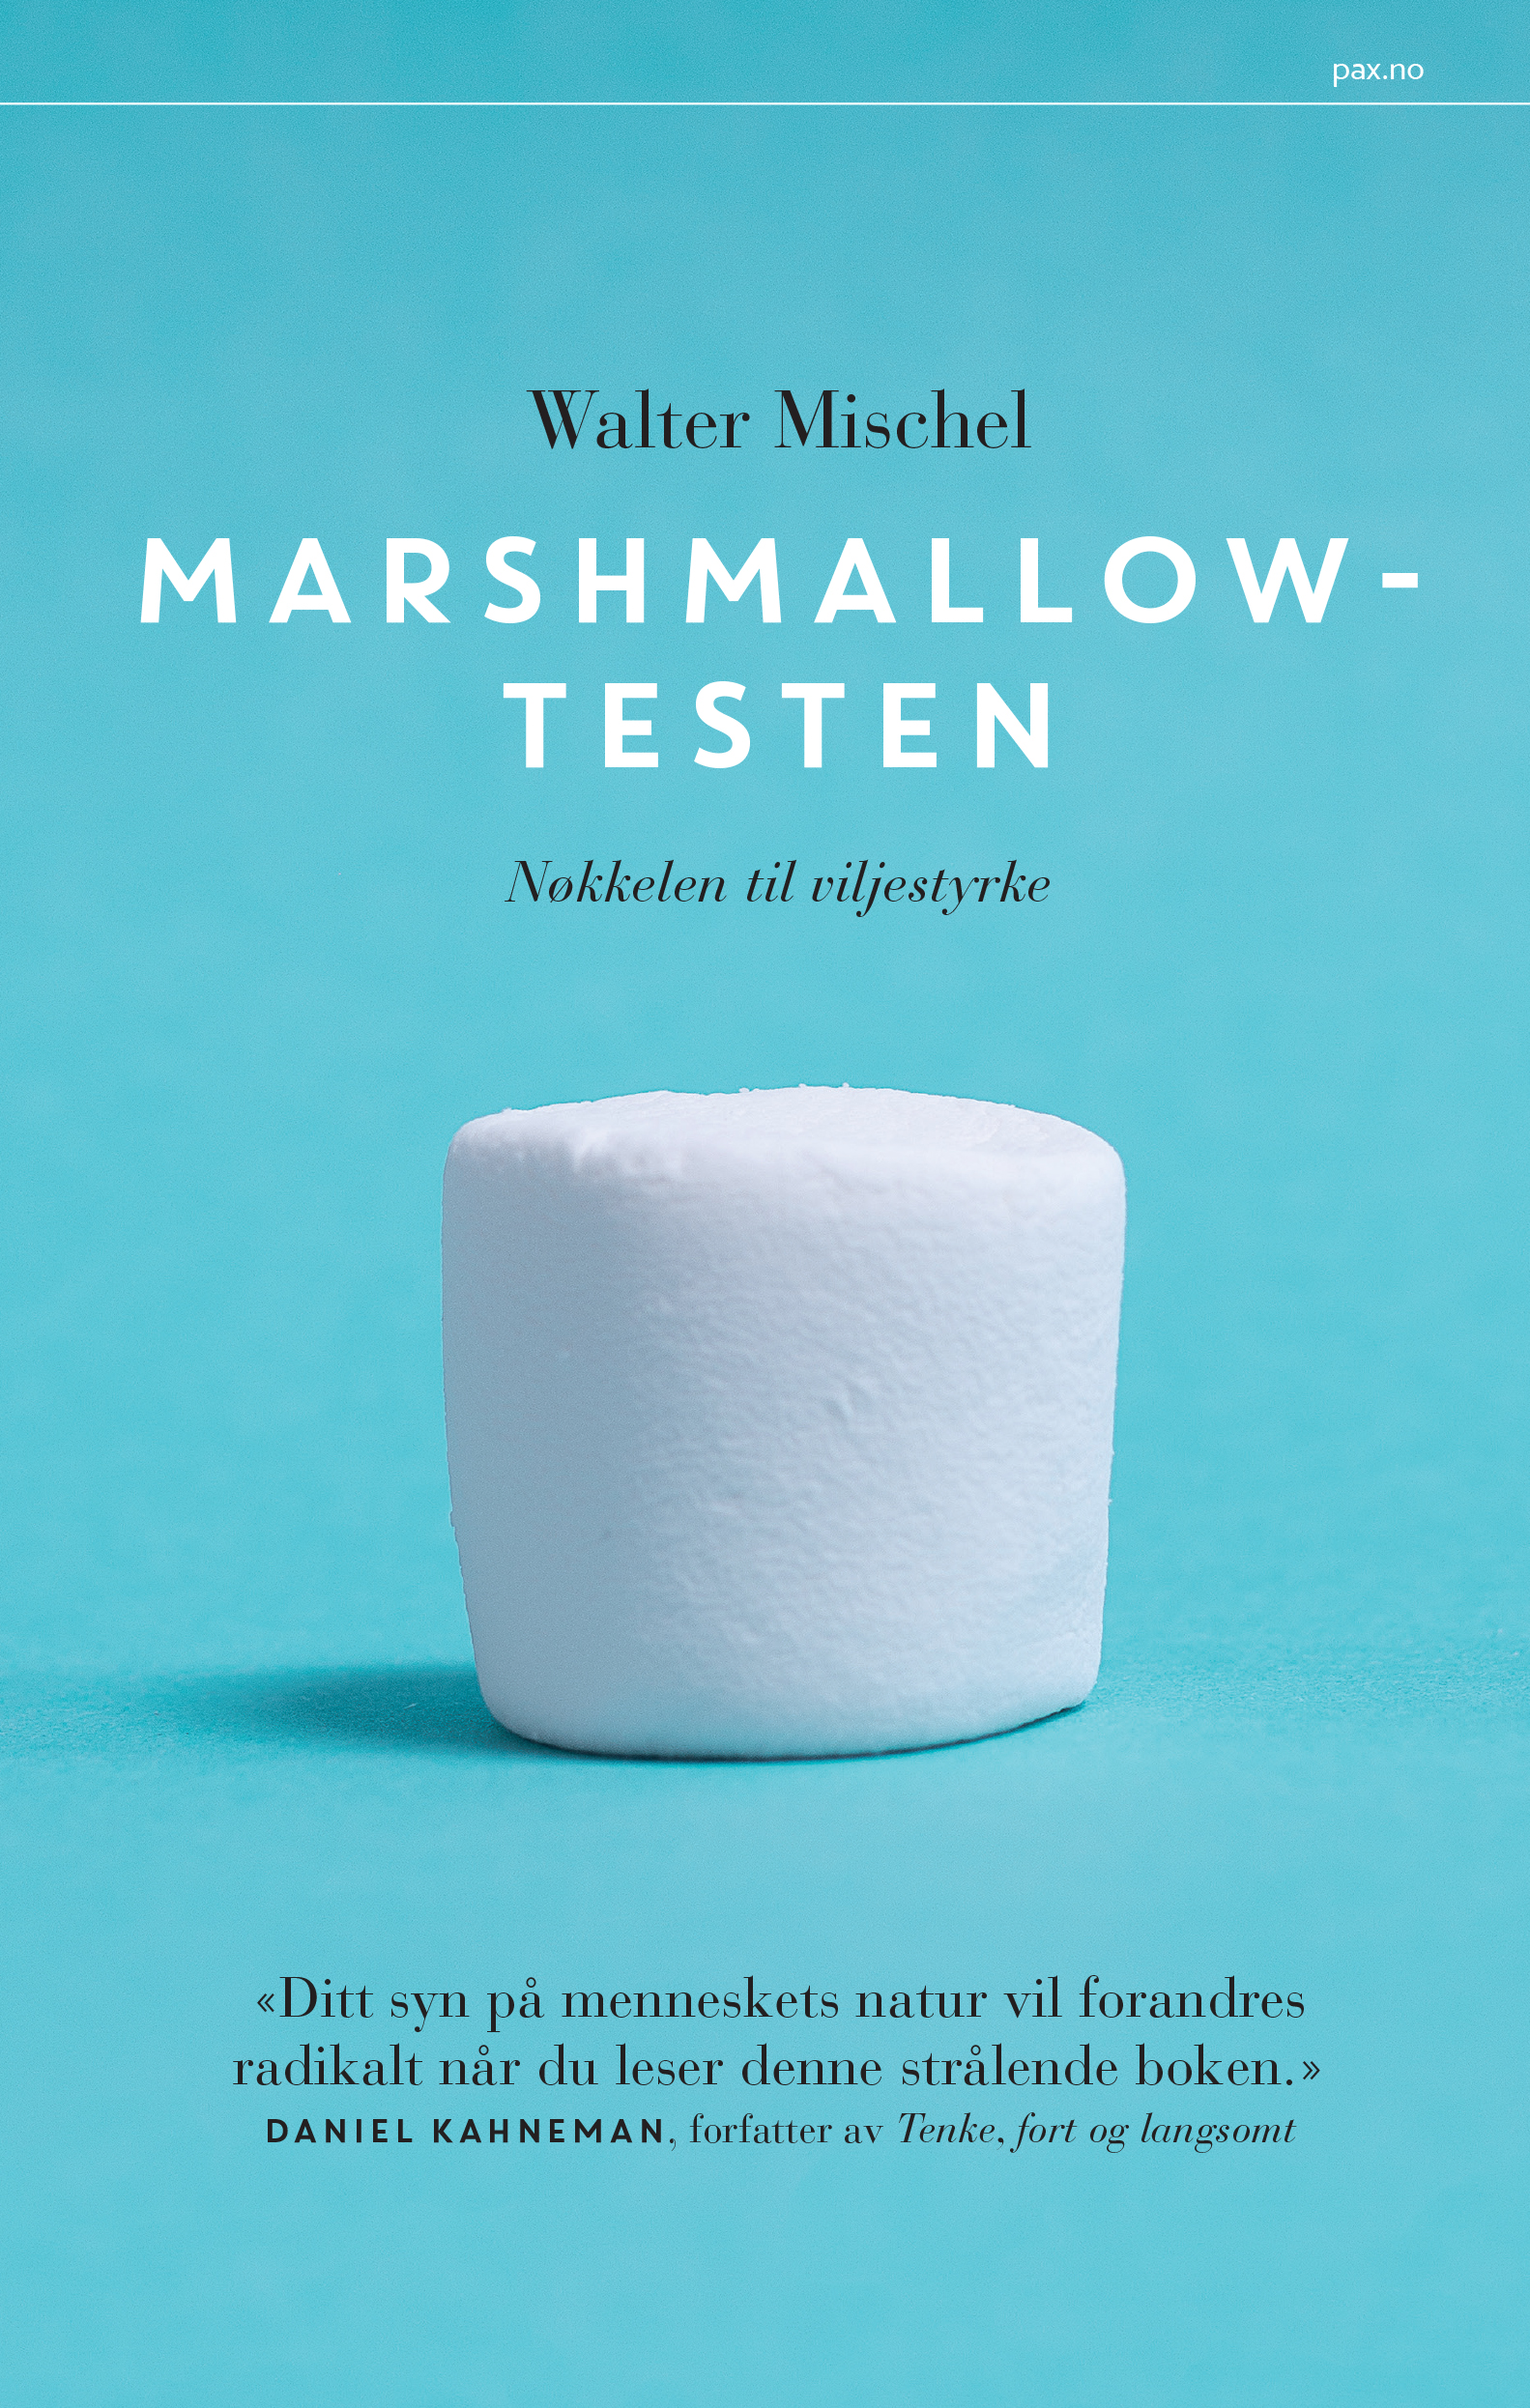 The Marshmallows Test